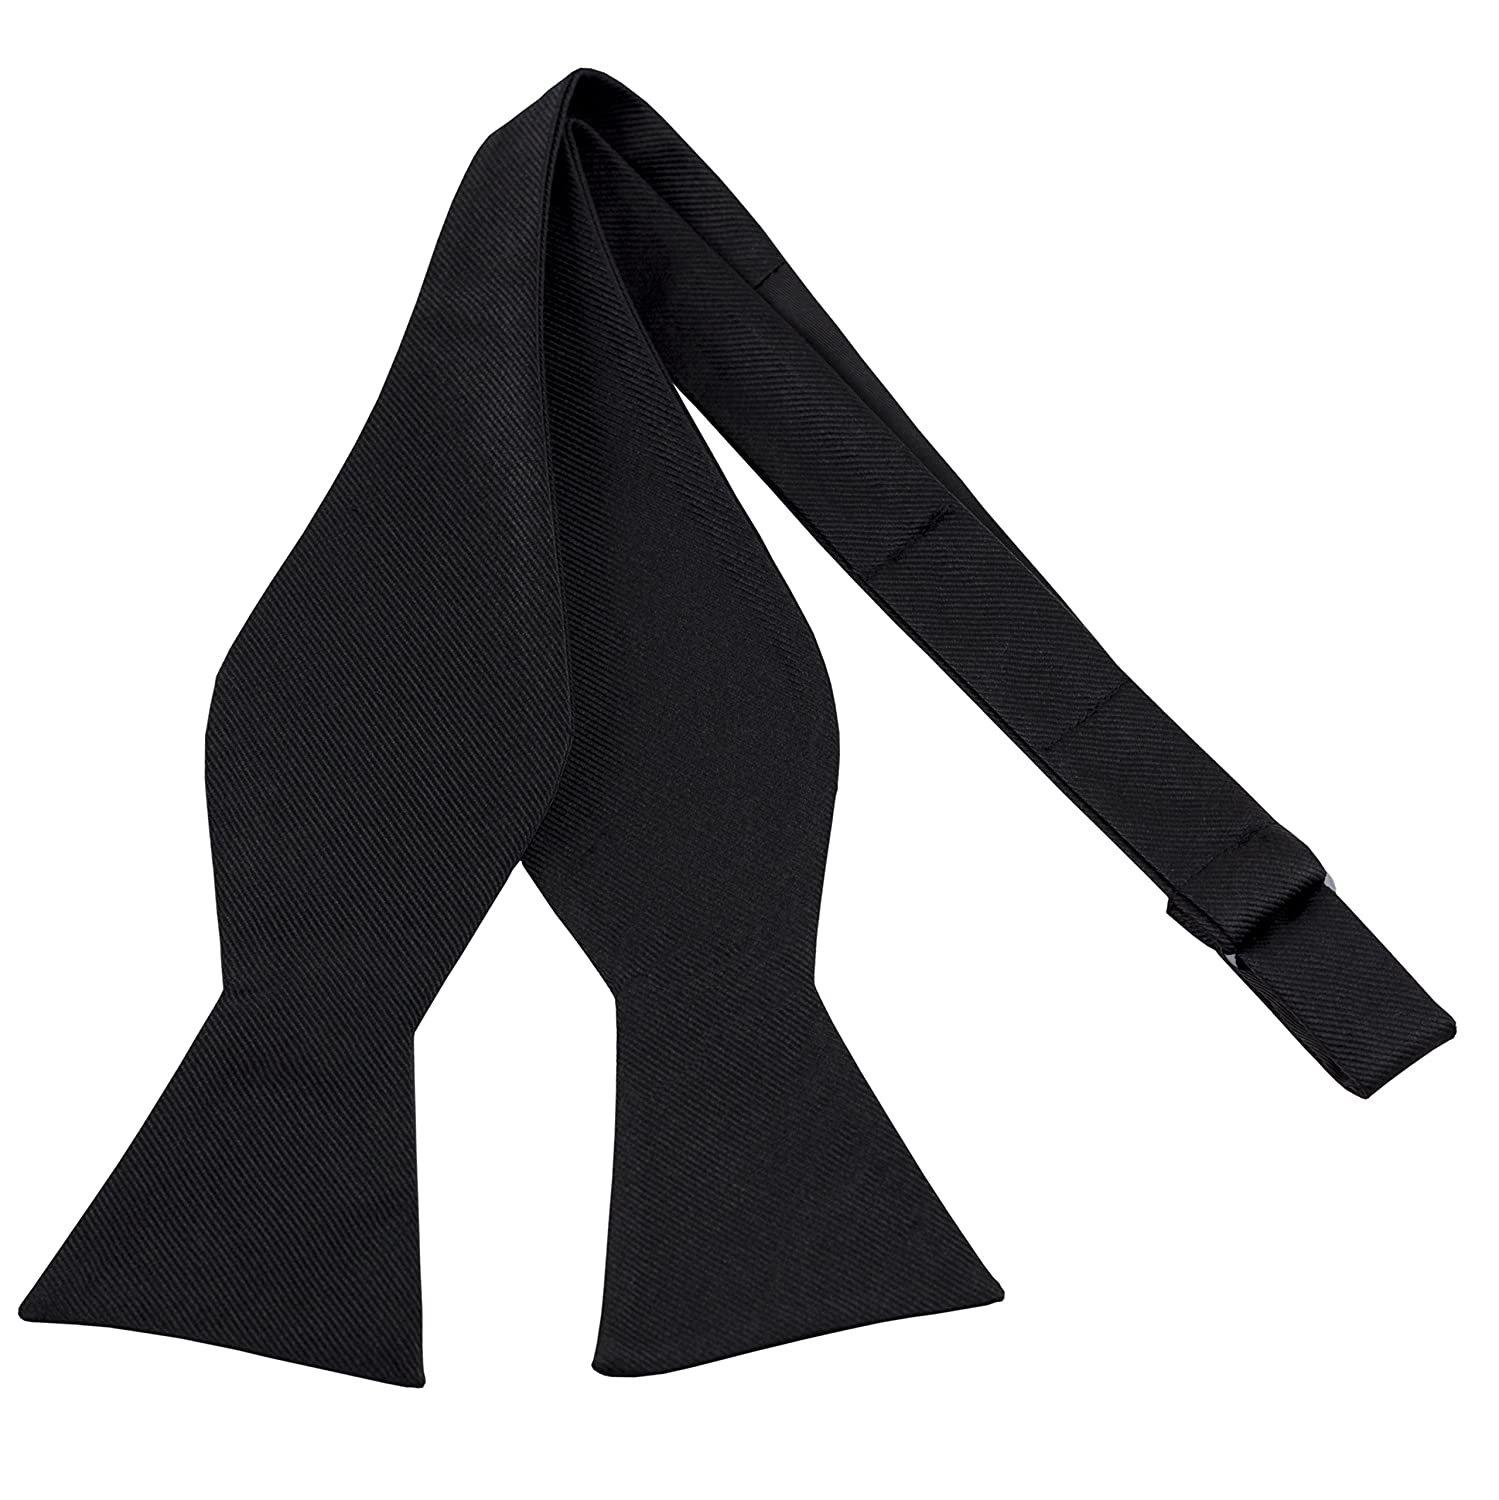 a835b2fe9742 100% Pure, Soft Silk: The preferred, premium fabric for finer men's tuxedo  ties. A Great Value For The Price: Usually $40 & up at department stores  for a ...